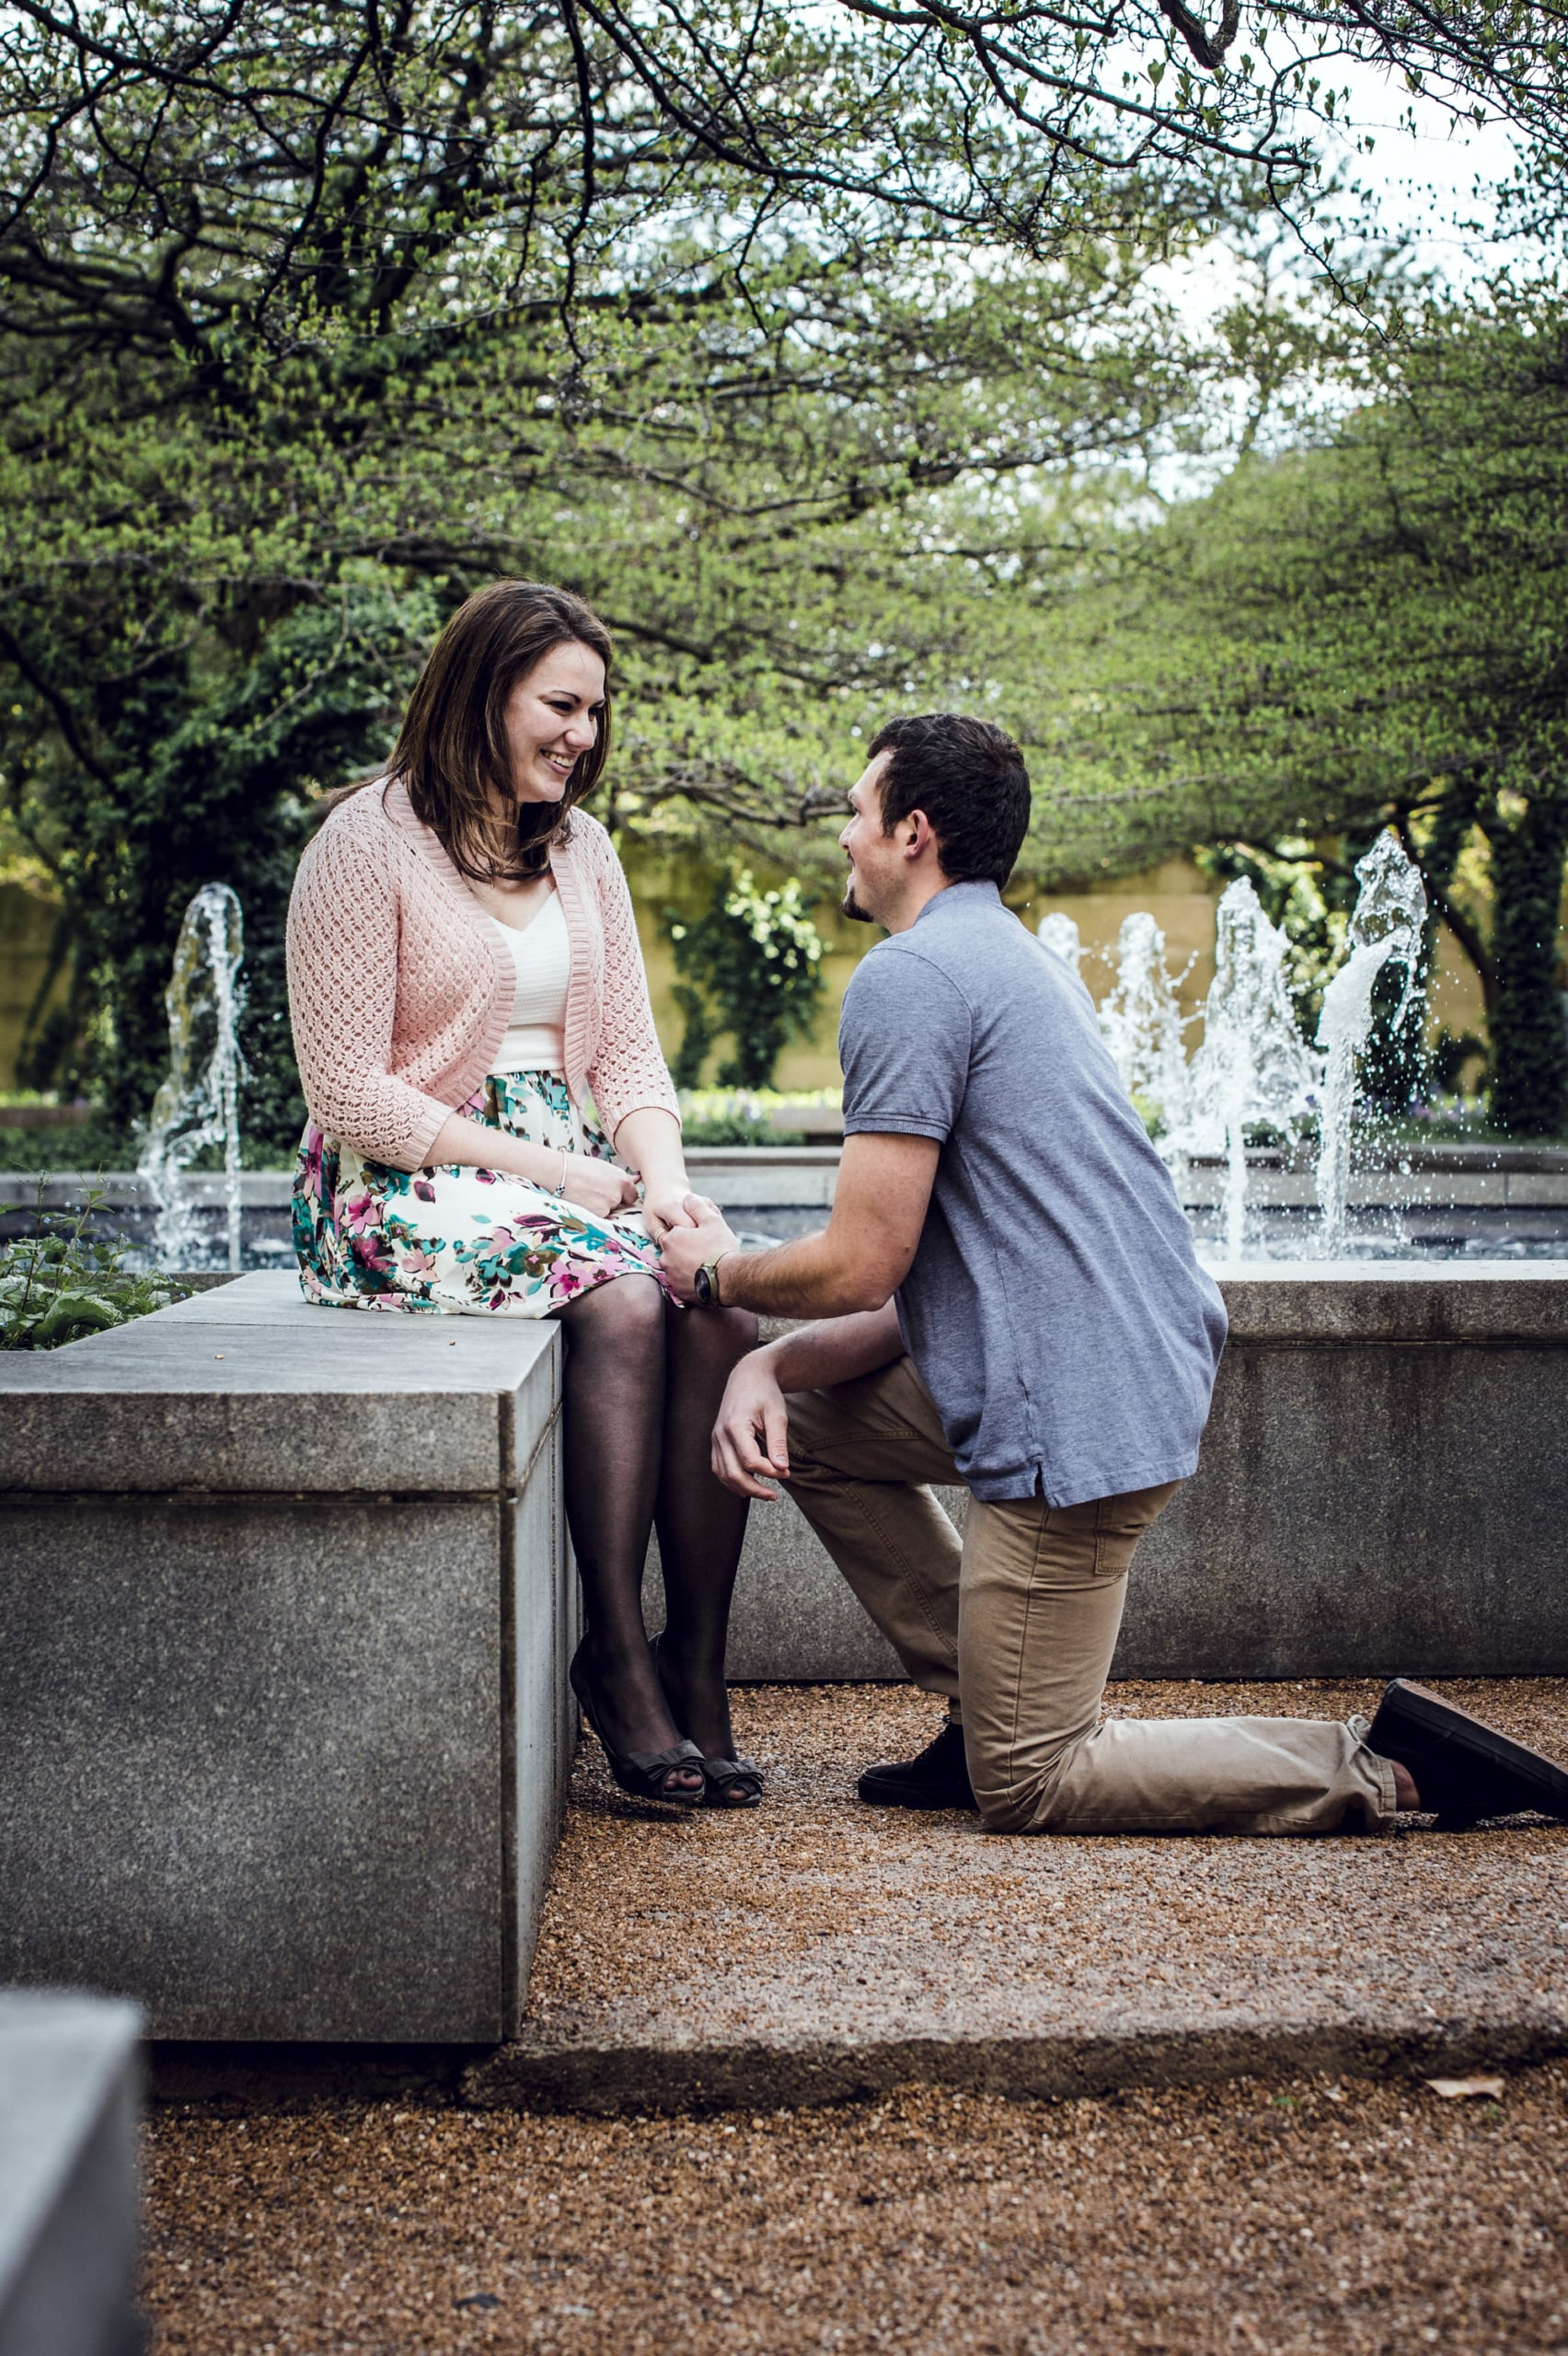 man and woman sitting on concrete fountain during daytime